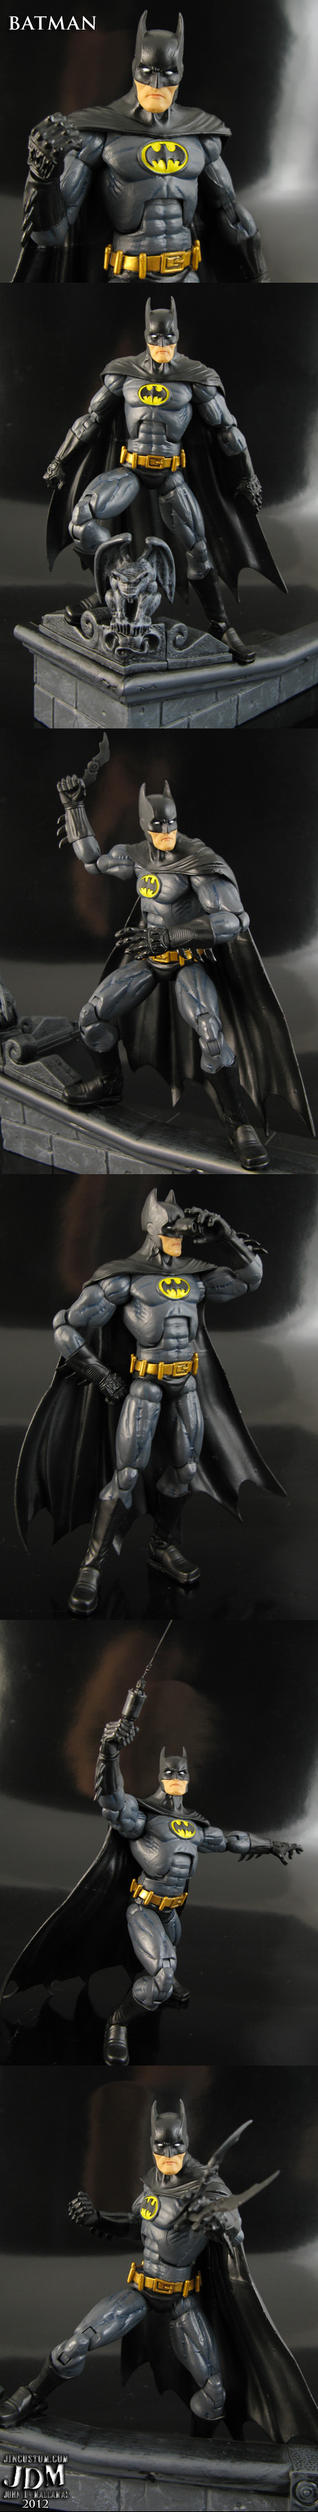 Super Articulated Batman six inch action figure by Jin-Saotome